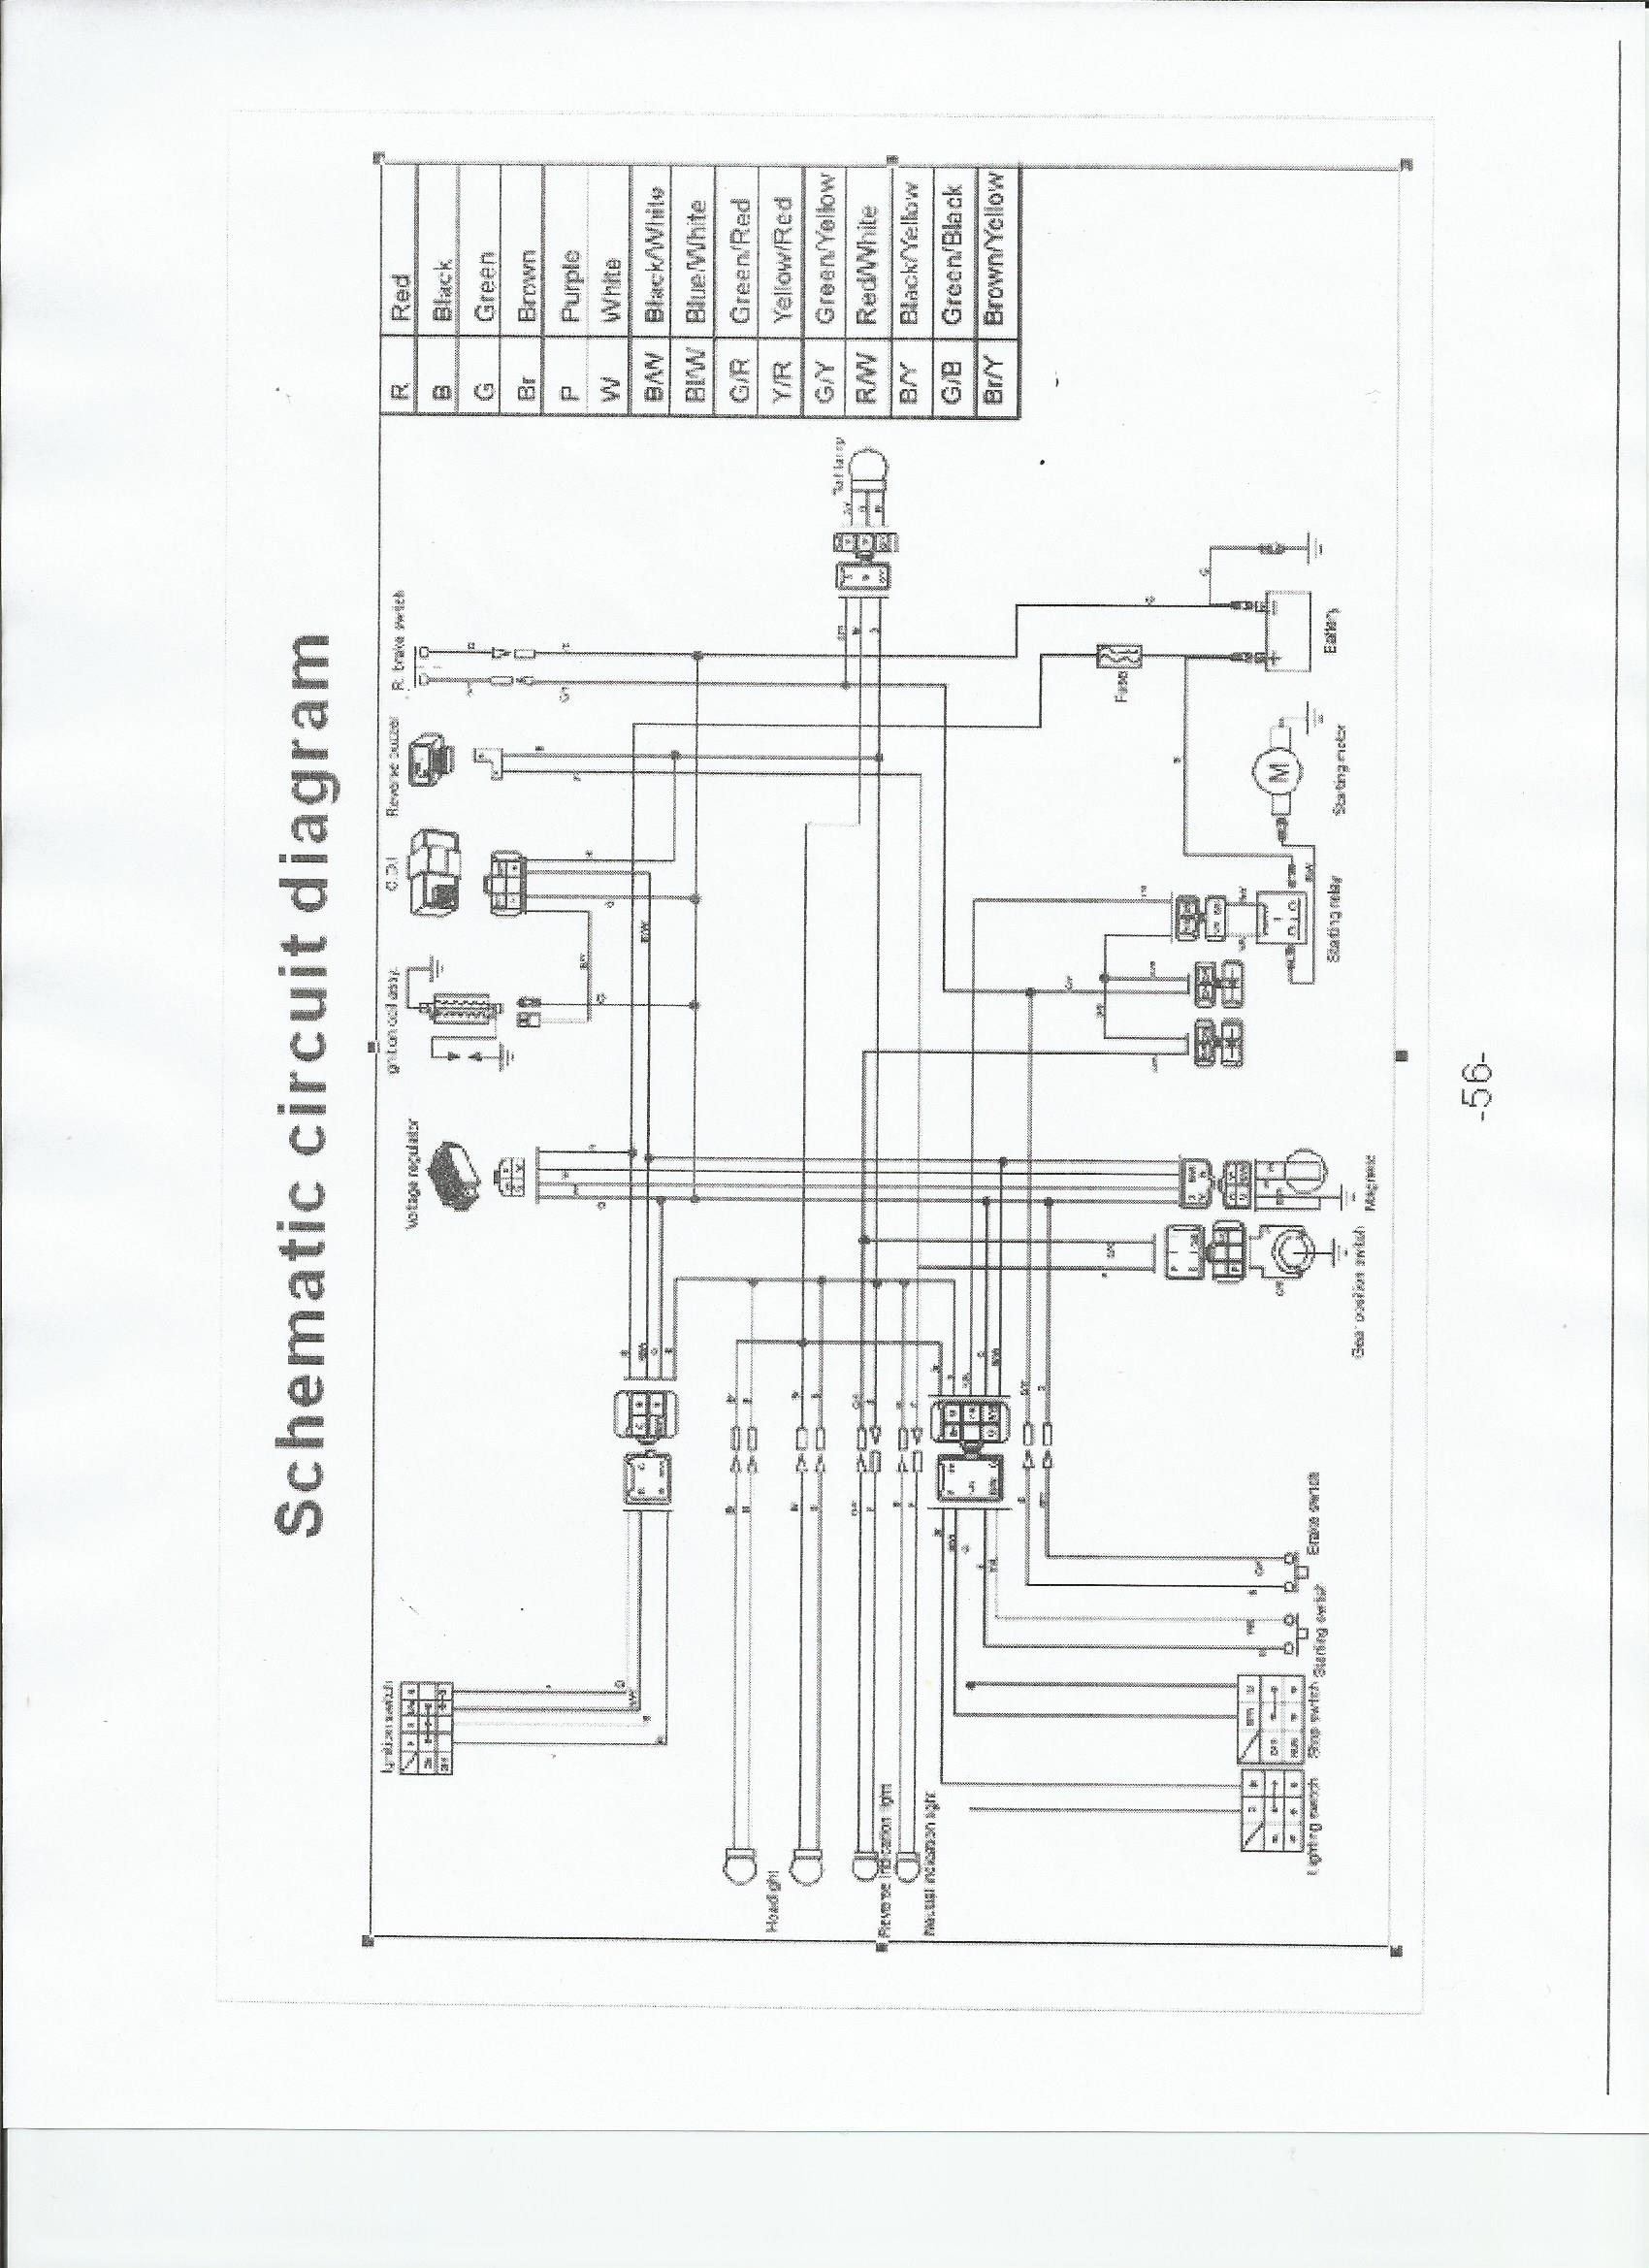 atv wiring schematic wiring data diagramtaotao mini and youth atv wiring schematic familygokarts support bad boy buggy wiring schematic atv wiring schematic